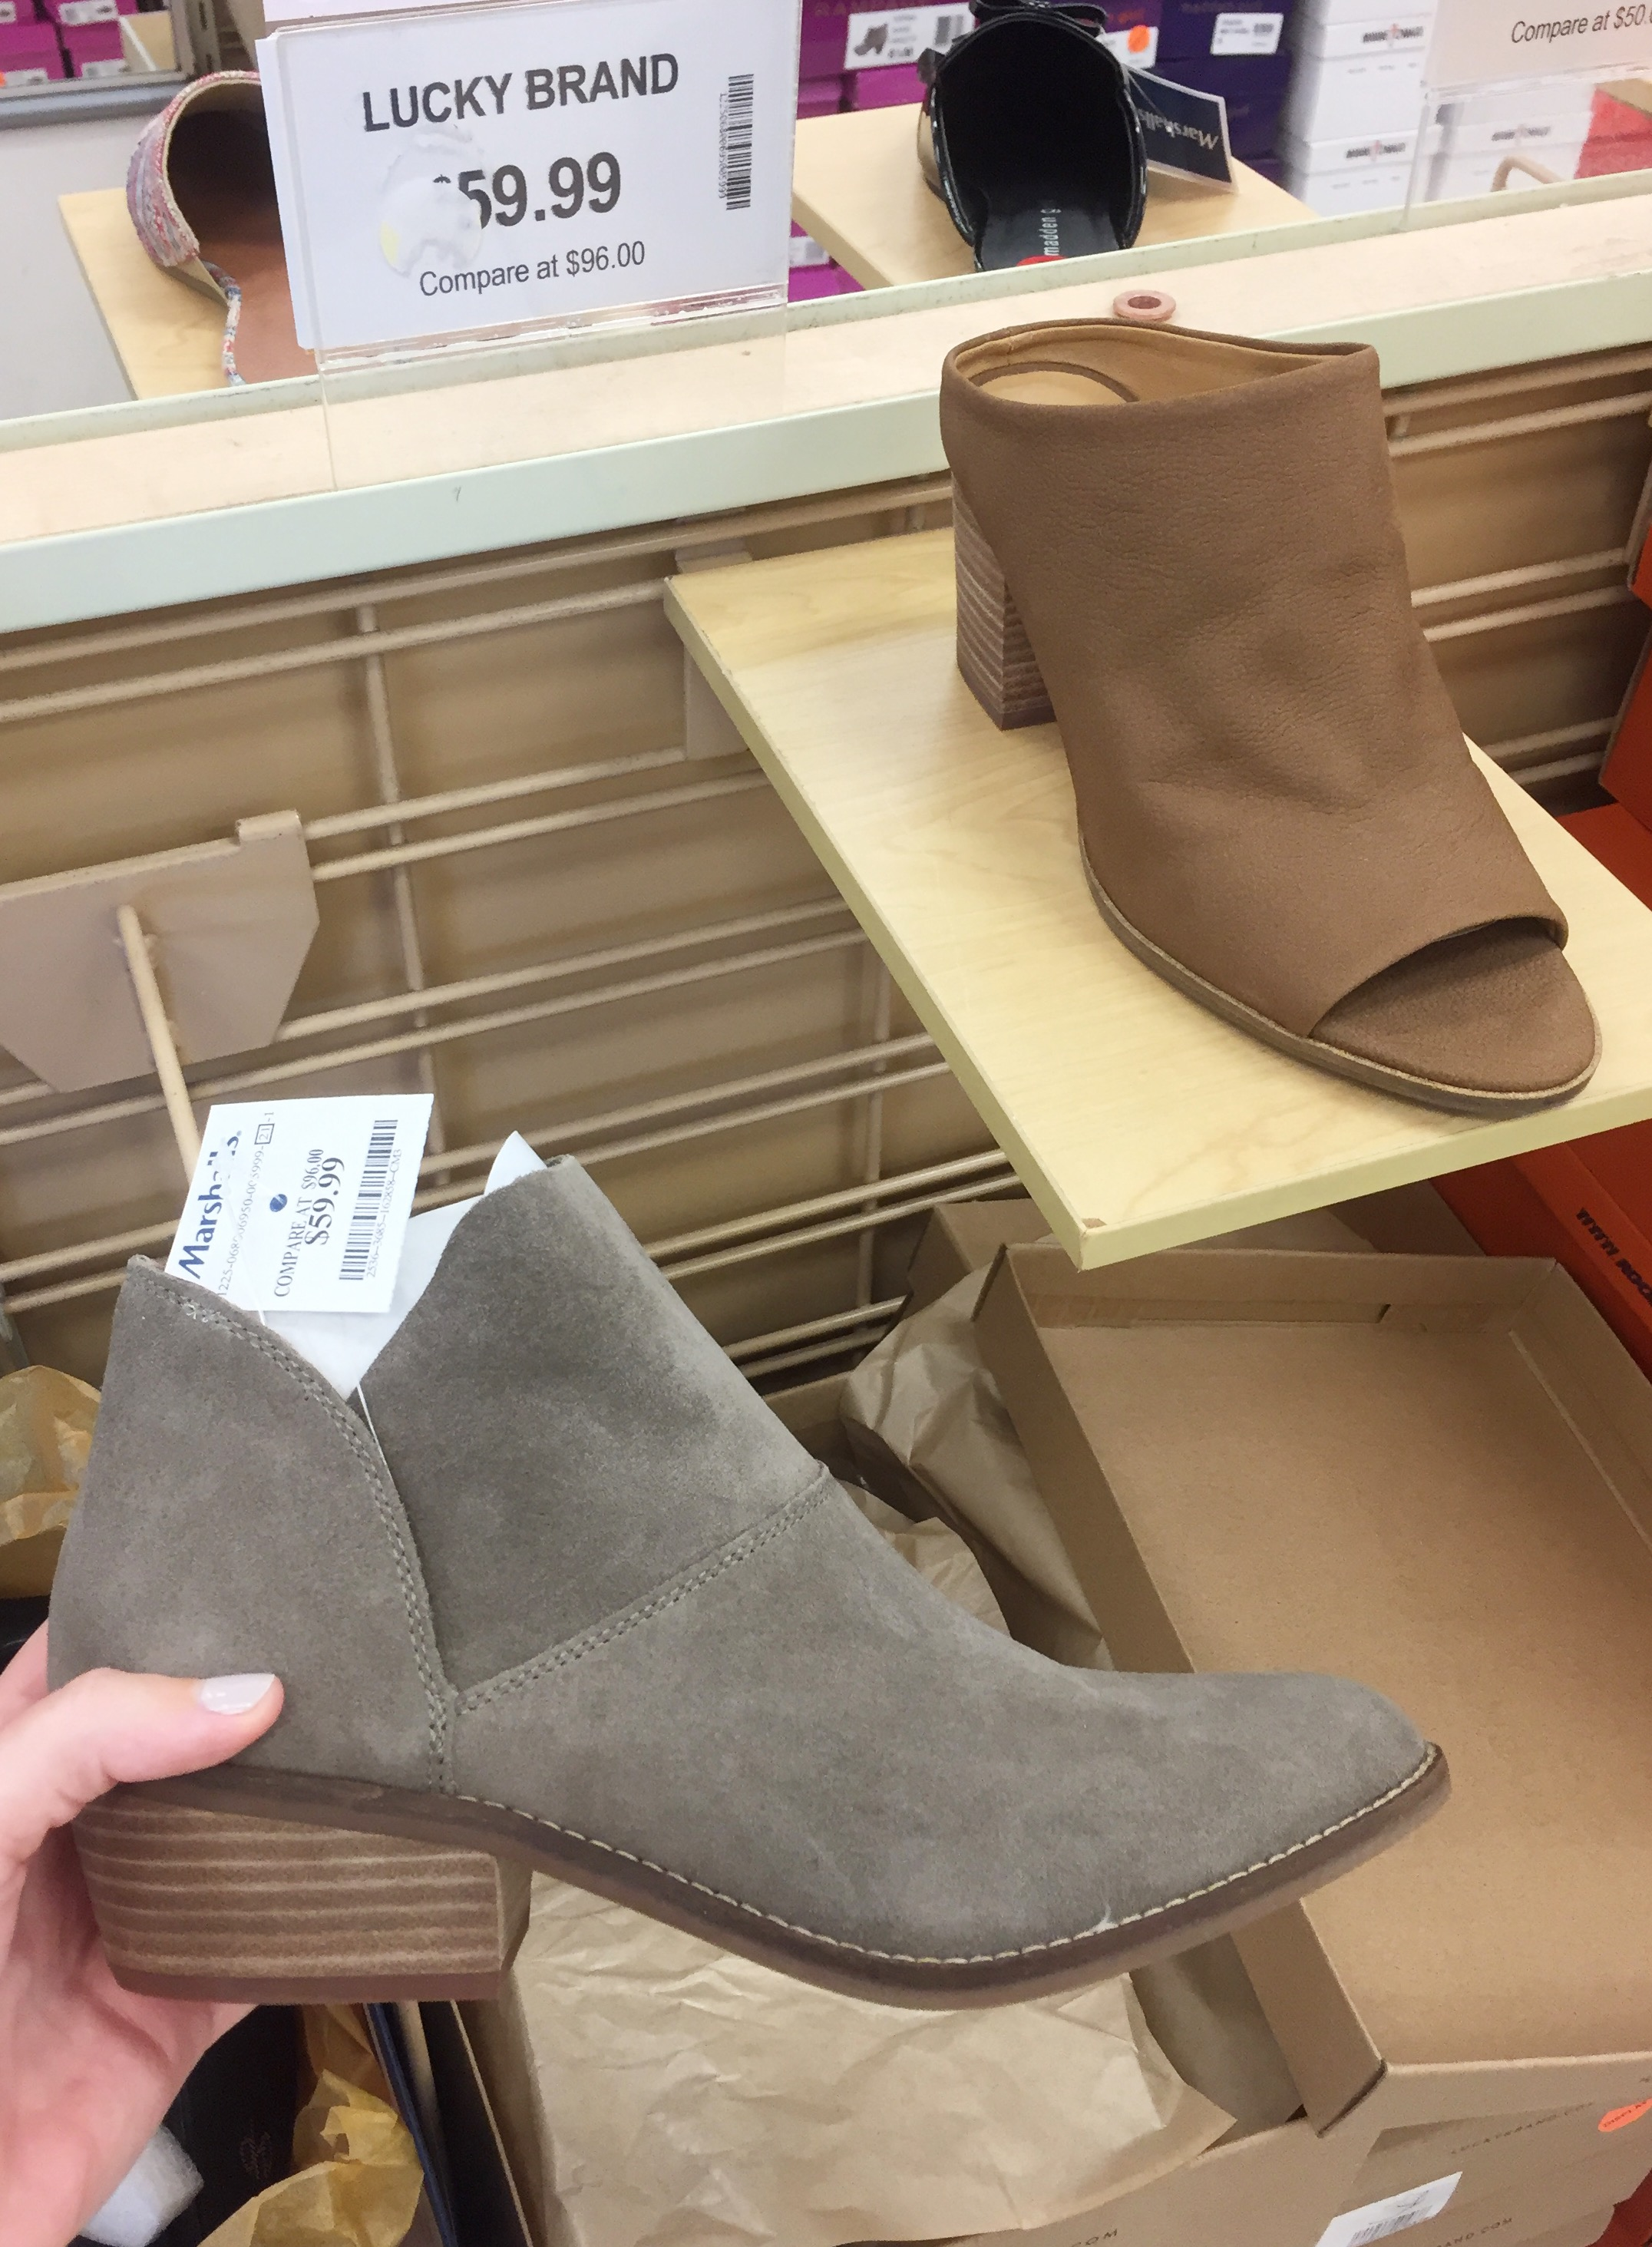 I saw those Lucky Brand mules in the background and couldn't believe my eyes. Those are basically the same shoes I've been wearing nonstop.   Click here   to see the limited sizes left at Nordstrom.I also saw the cute pair of Lucky Brand booties that I'm holding and wanted them too.